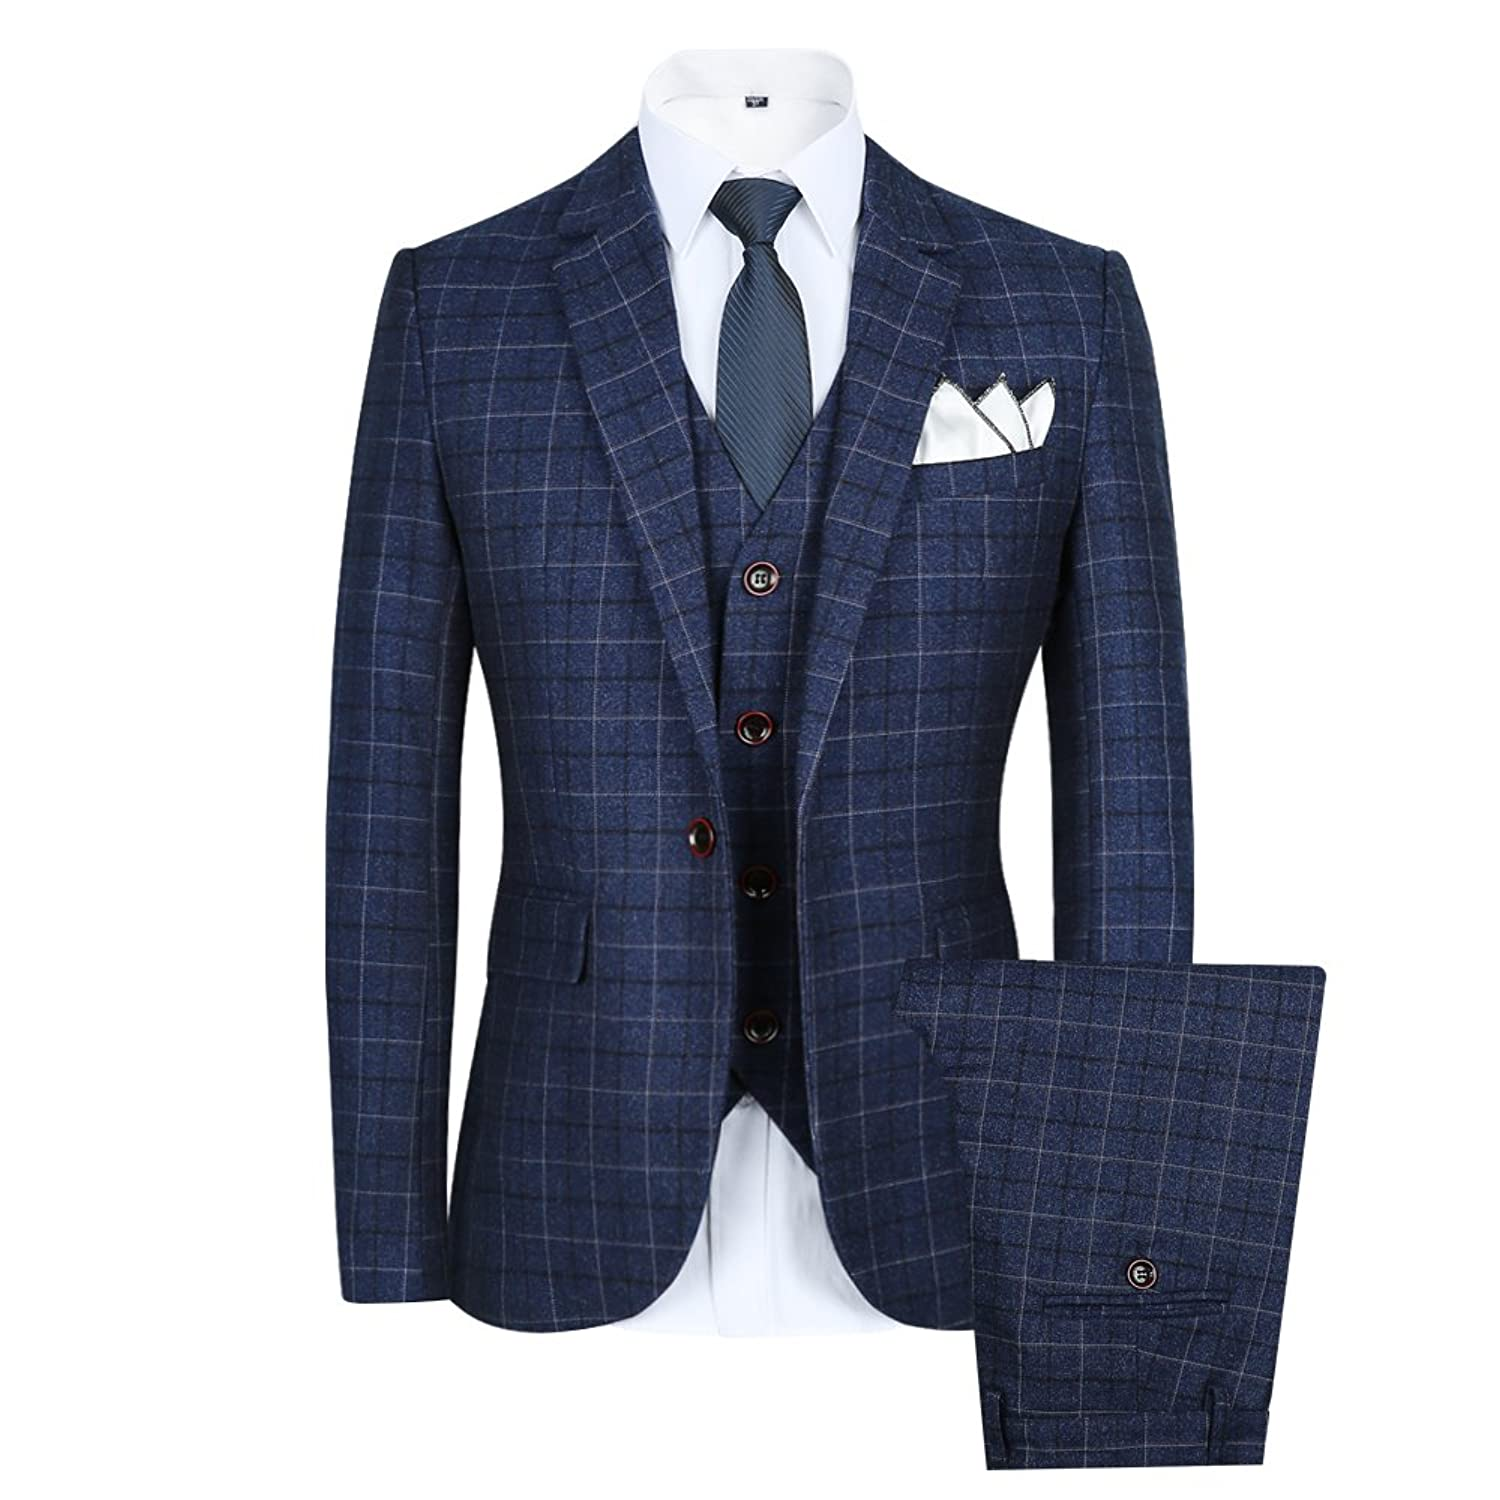 Dress to impress with Belk's wide assortment of men's dress clothes. Formal clothes are an integral addition to every man's wardrobe. Browse a variety of men's dress clothes for all of your special occasions - from weddings to dinner parties and everything in between.